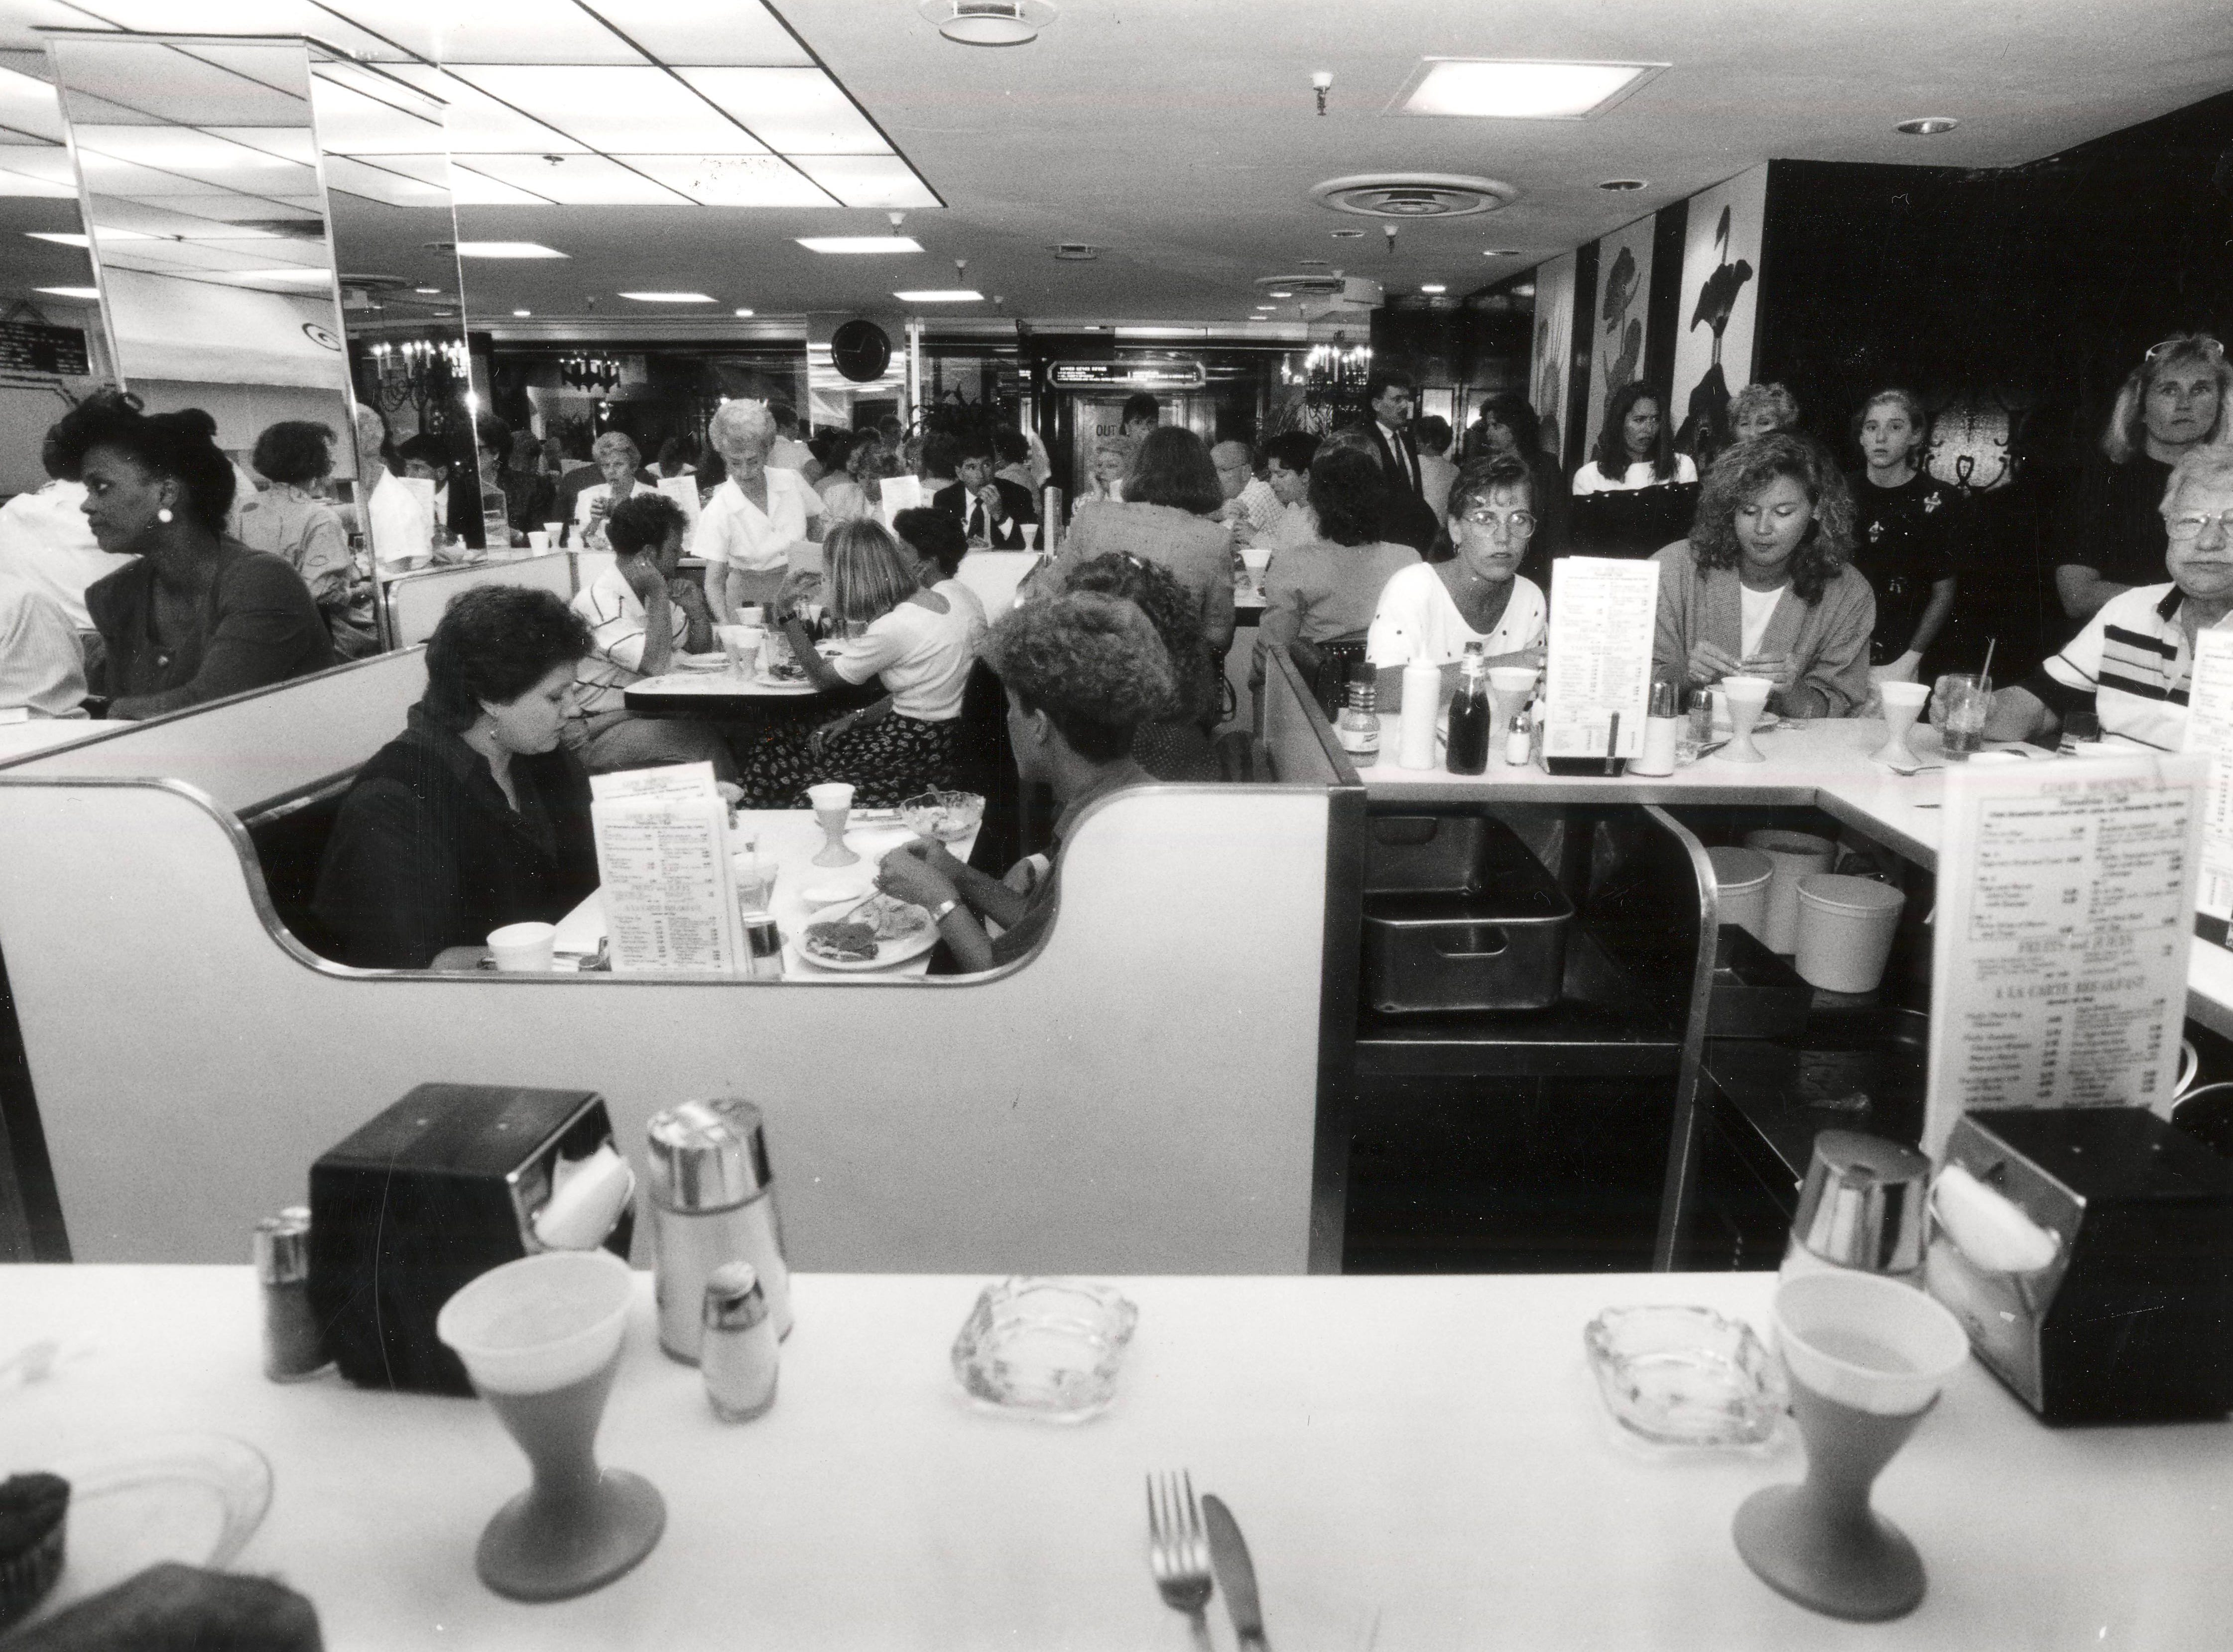 AUGUST 15, 1991: Lunchtime at Hathaway's in the Carew Tower. The place gets pretty crowded but the turnover is quick.  Scanned 1/17/2019